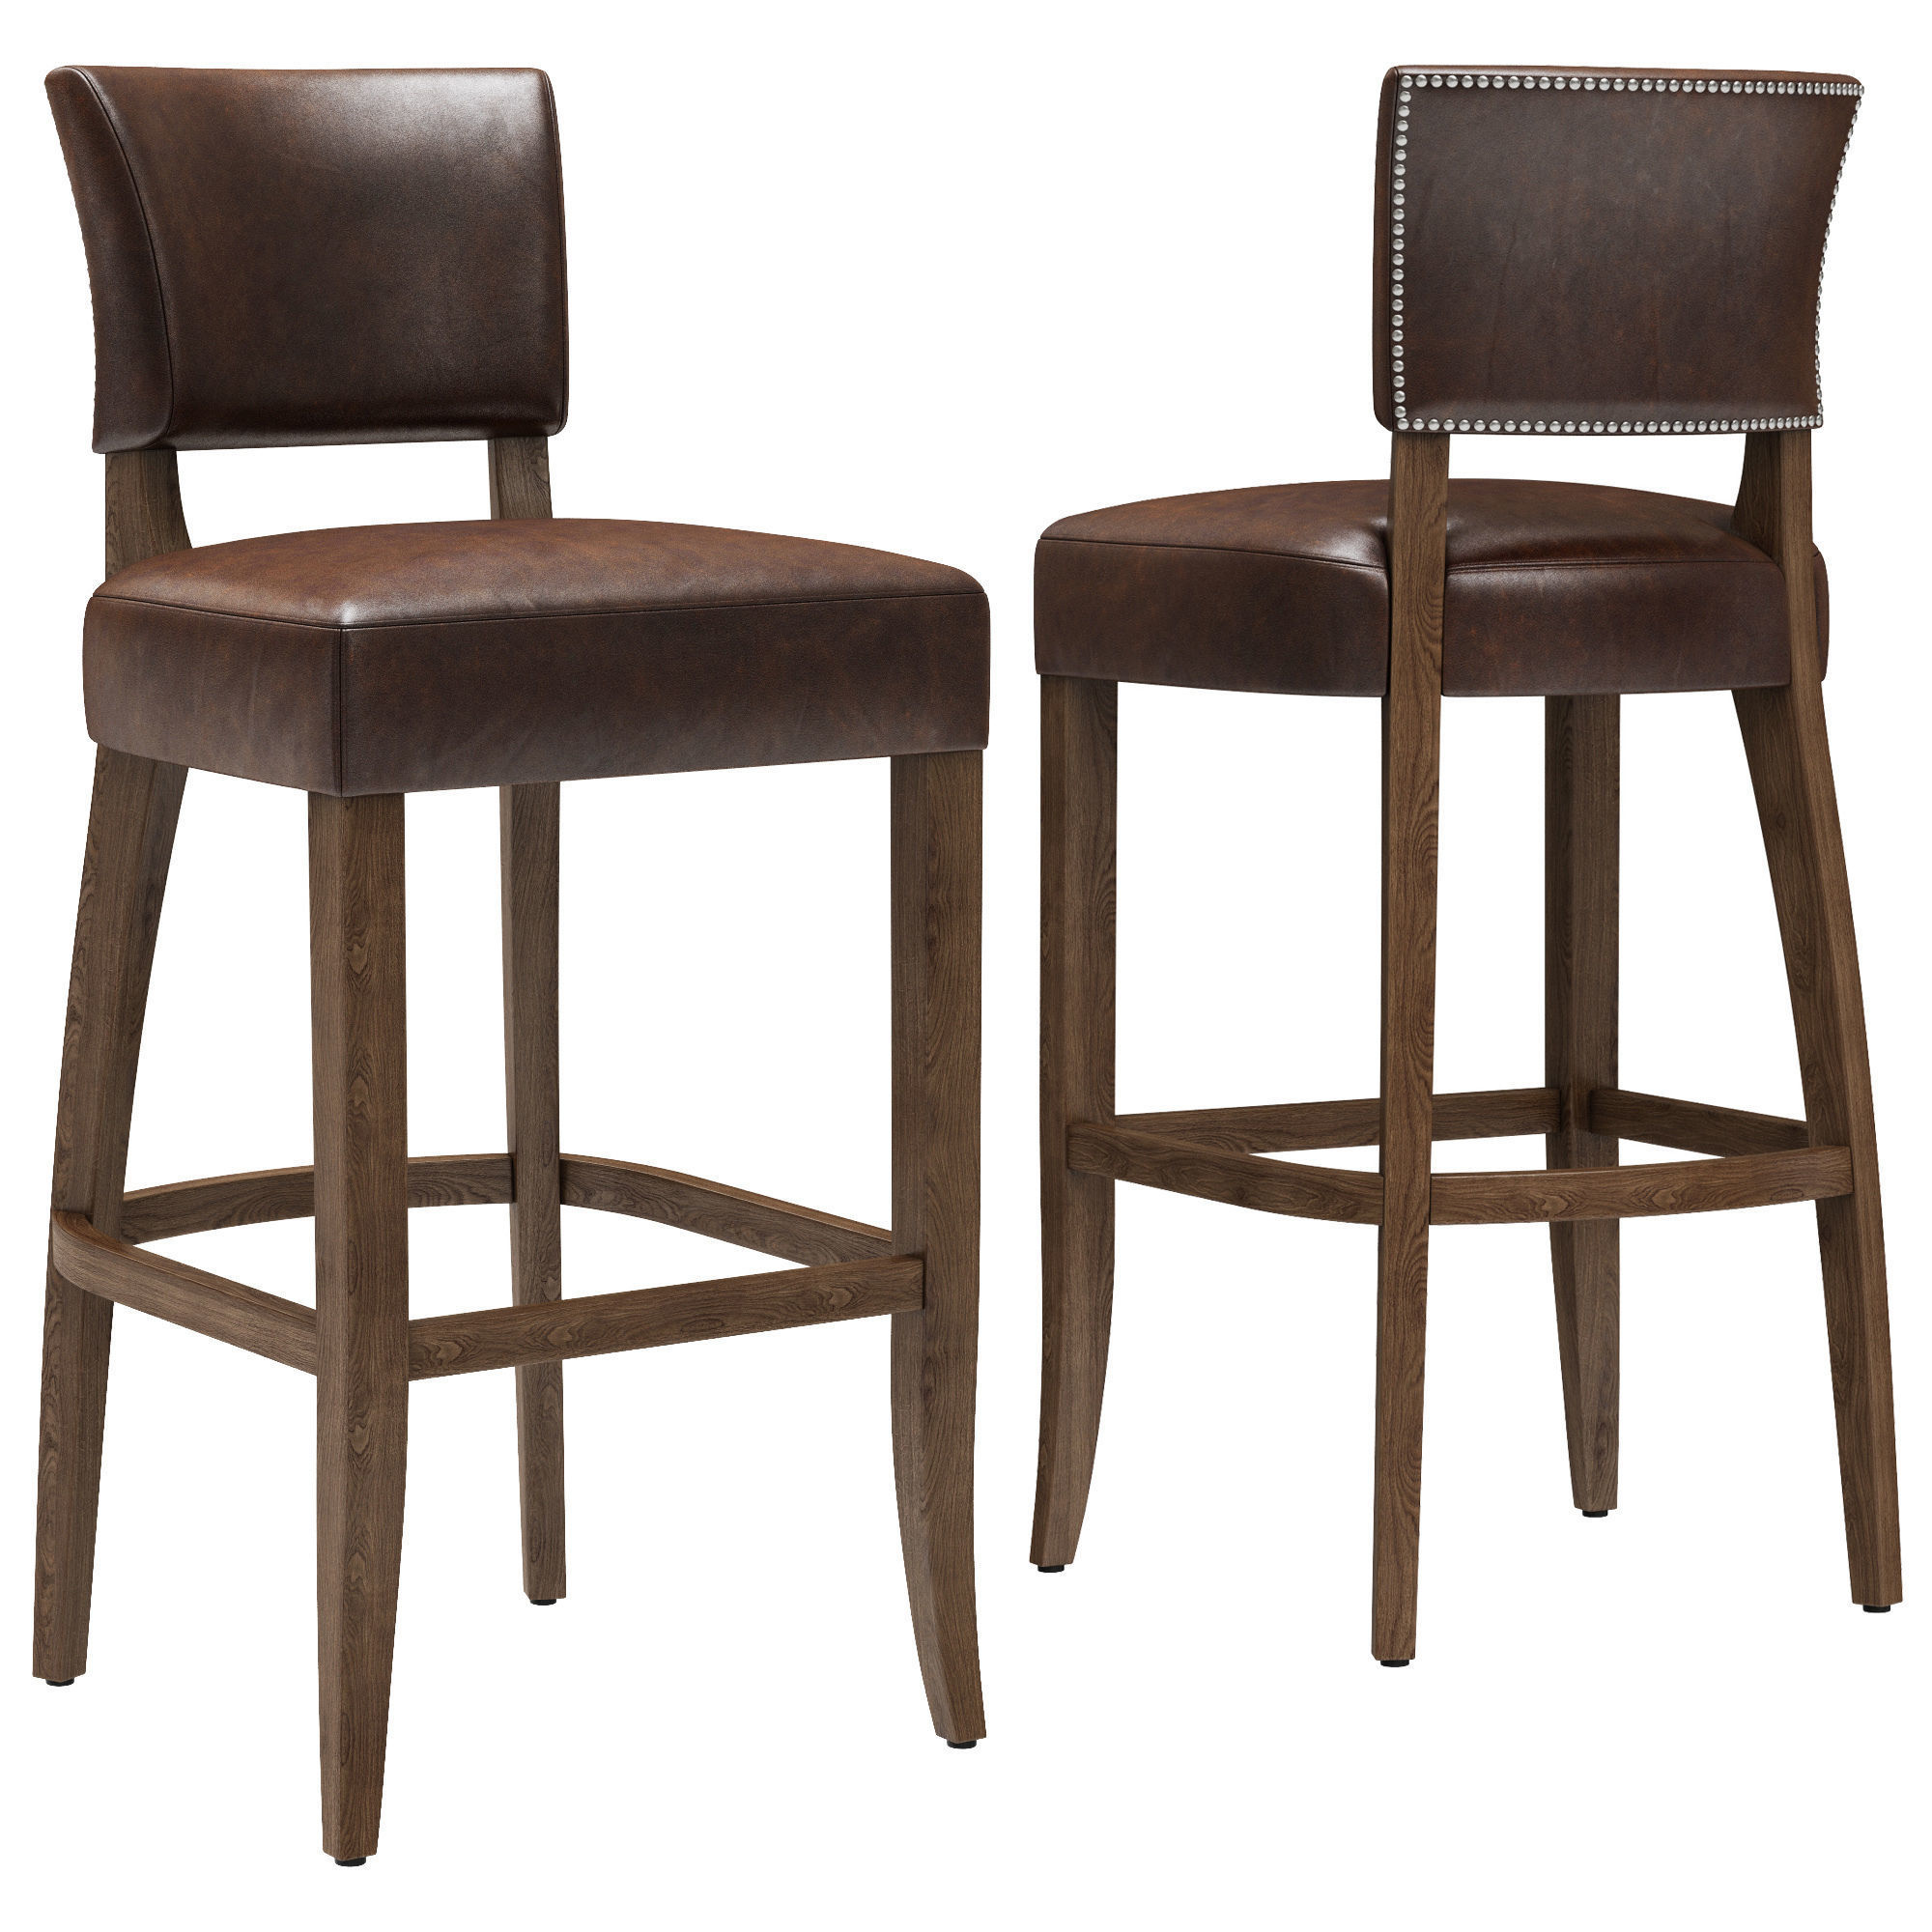 Restoration Hardware Adele Leather Stool